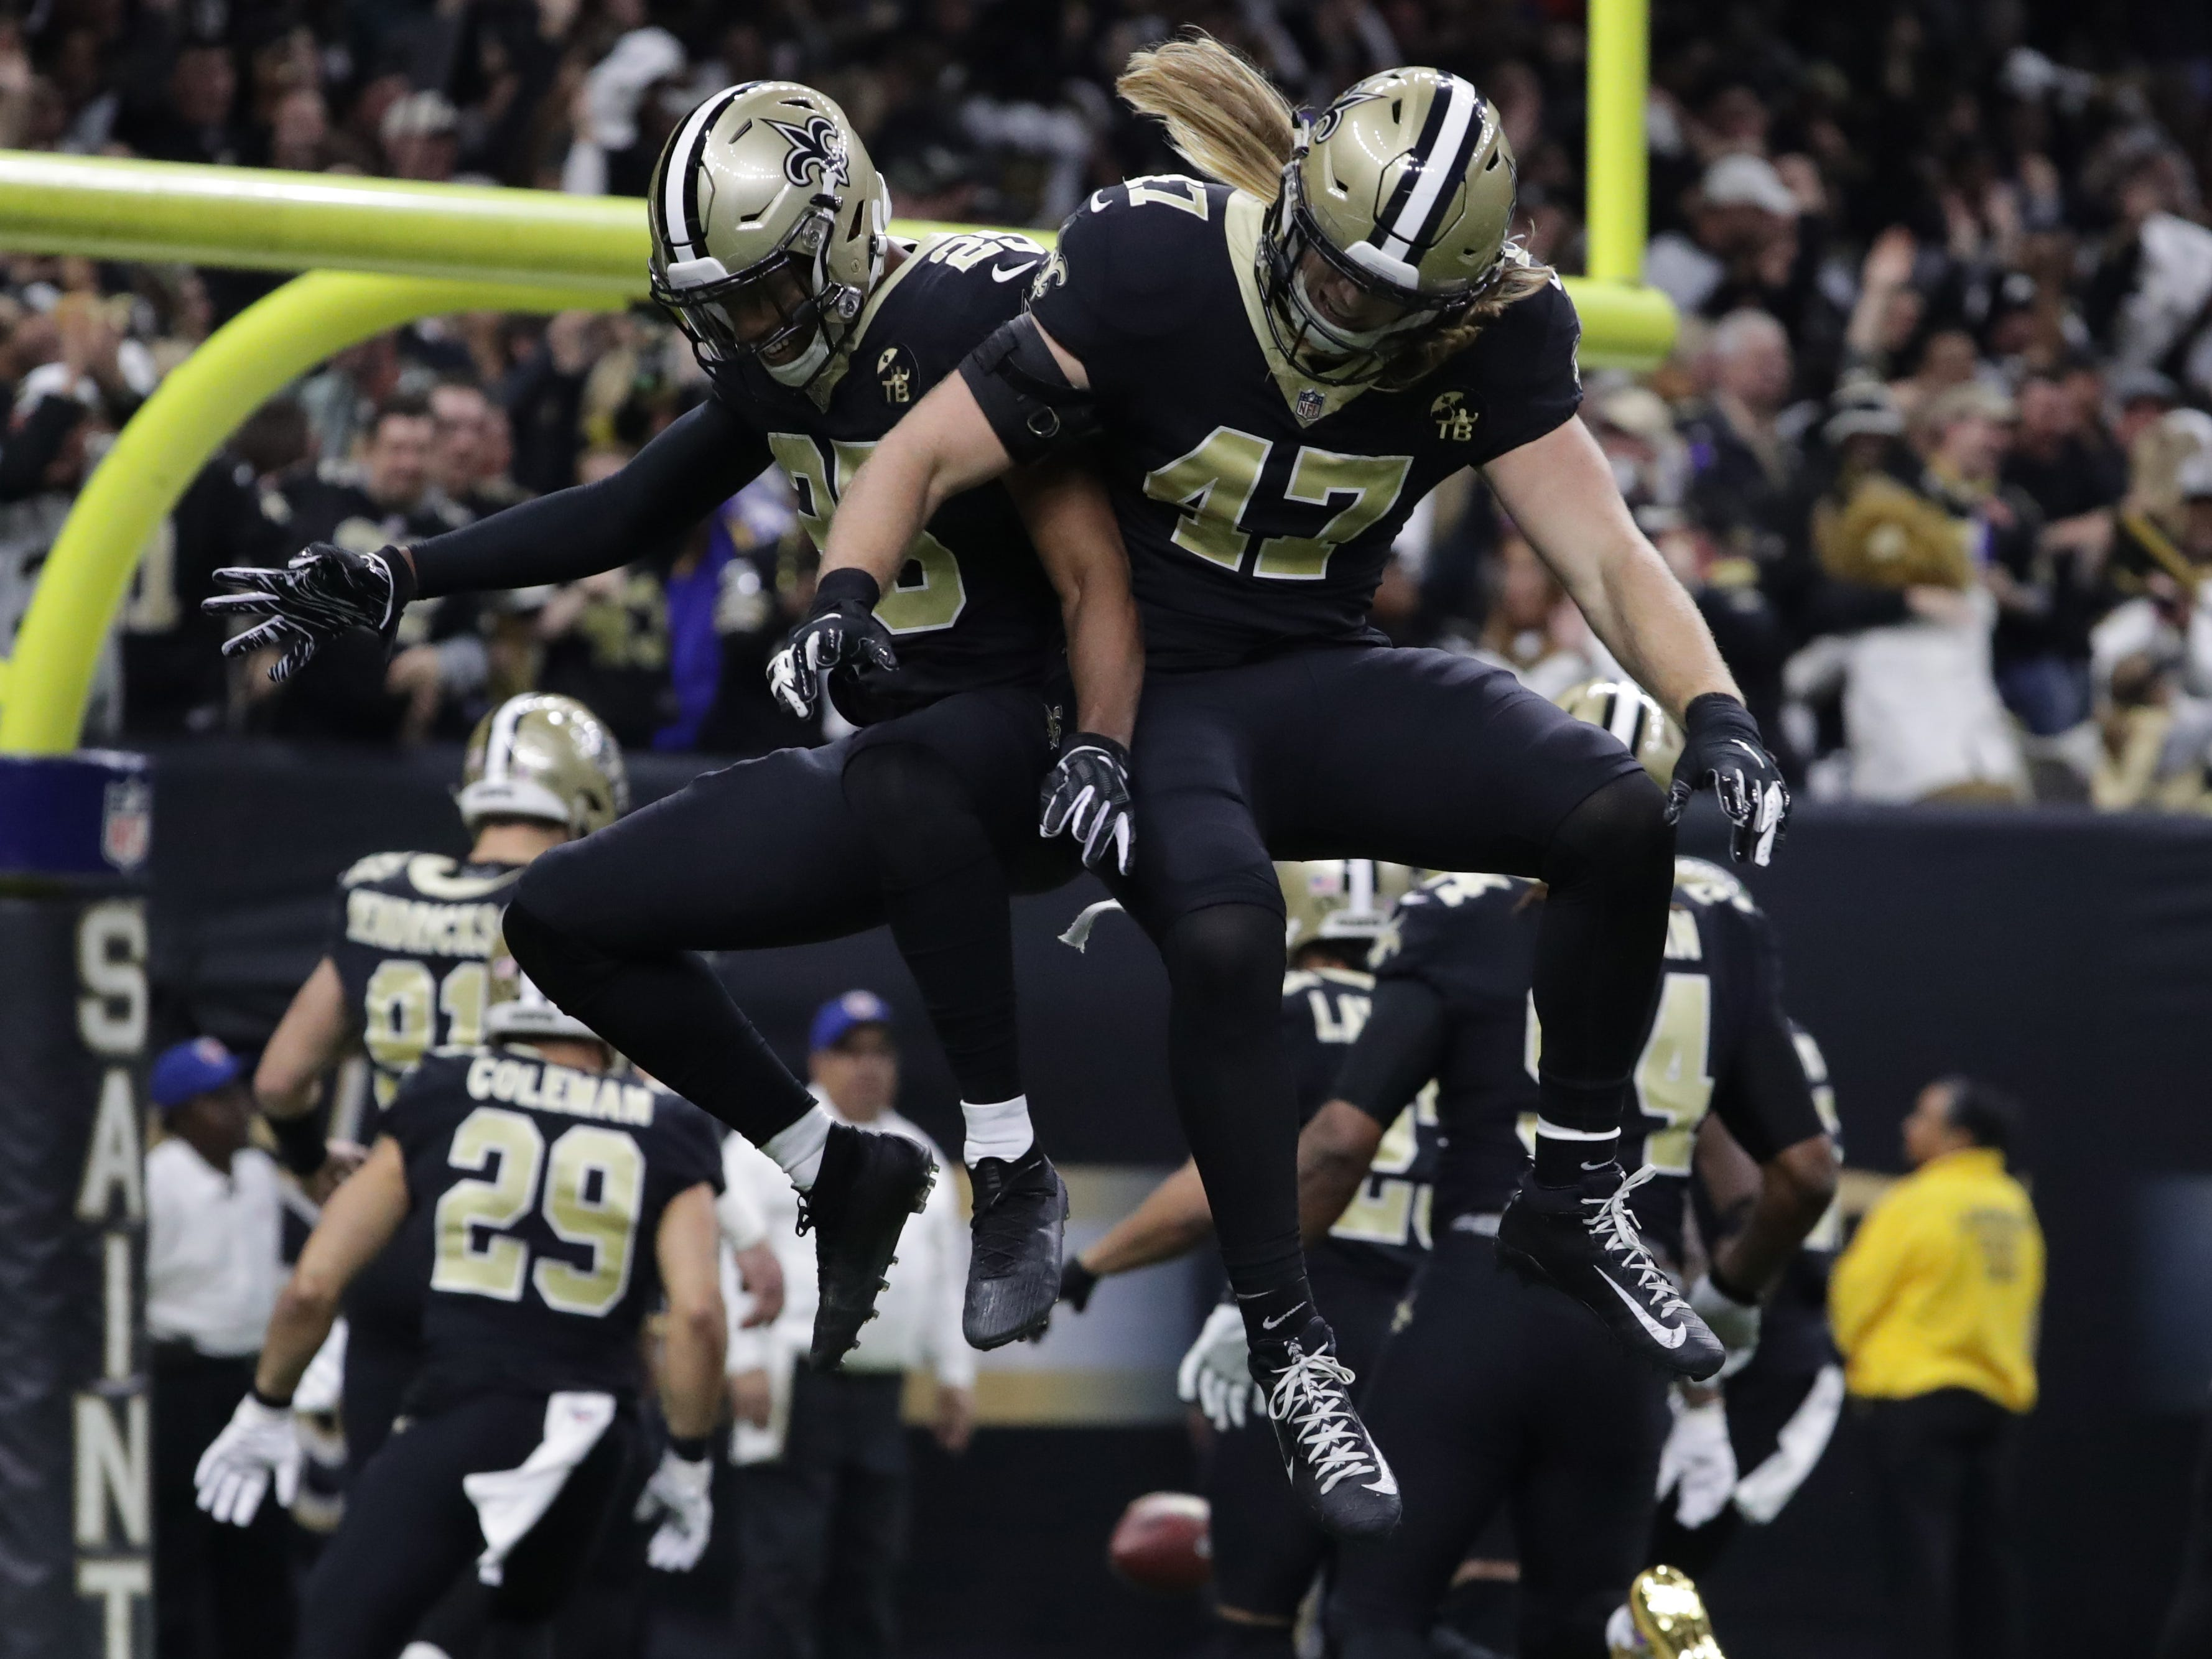 New Orleans Saints cornerback Eli Apple (25) and middle linebacker Alex Anzalone (47) celebrate after a turnover against the Los Angeles Rams during the first quarter of the NFC Championship game at Mercedes-Benz Superdome.